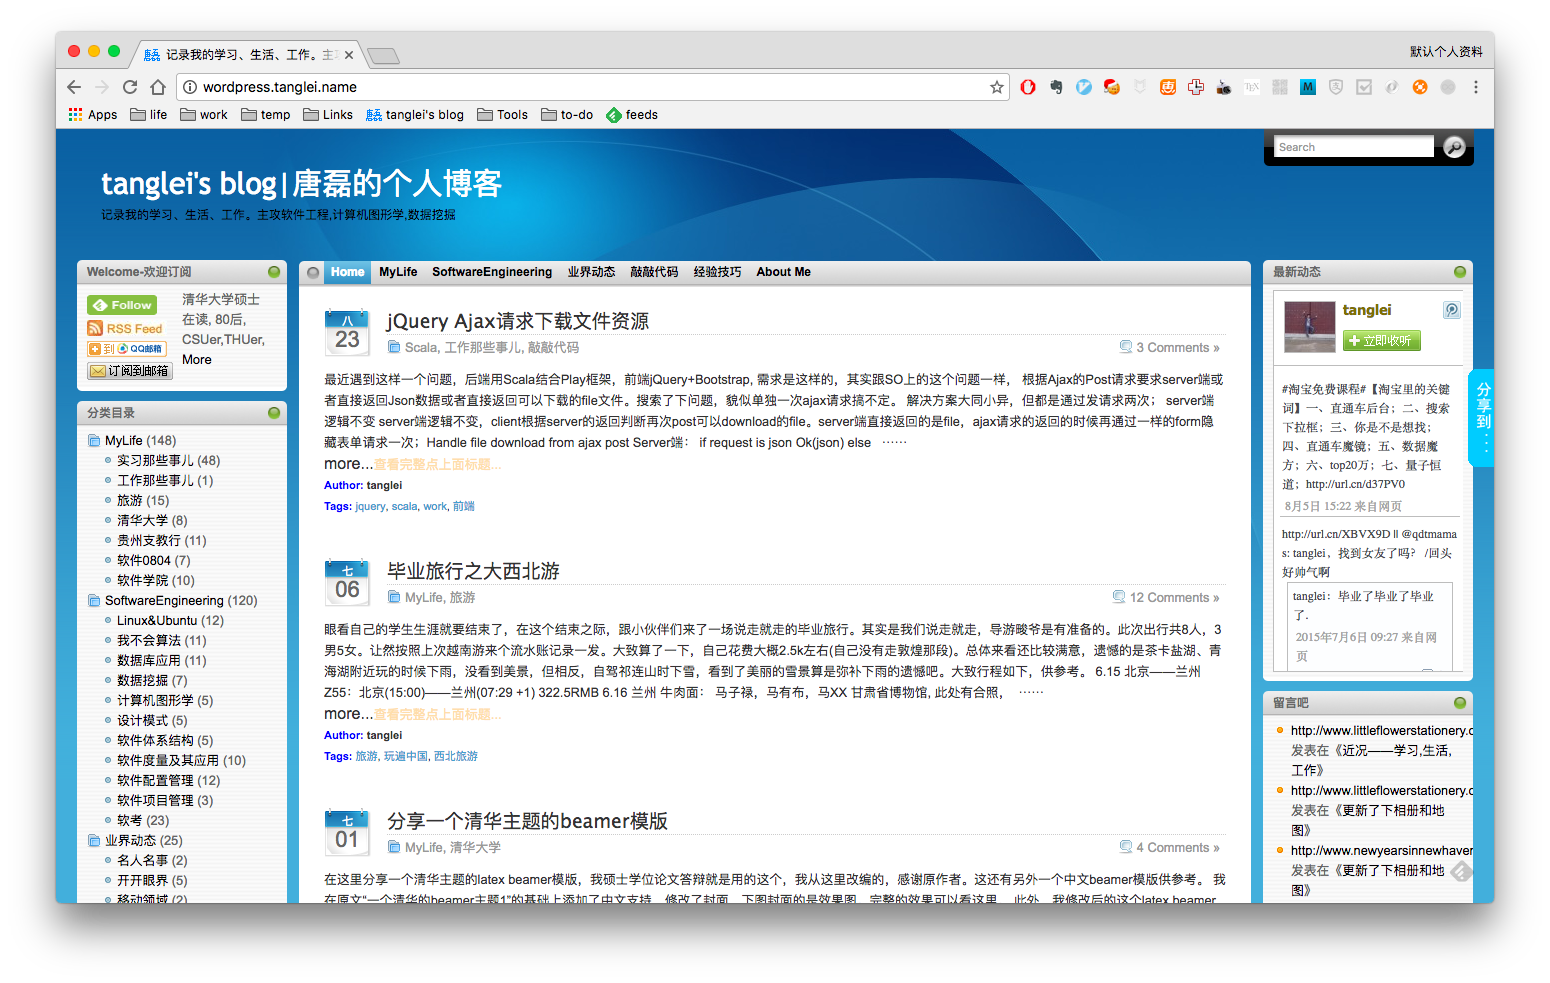 唐磊的 wordpress 博客